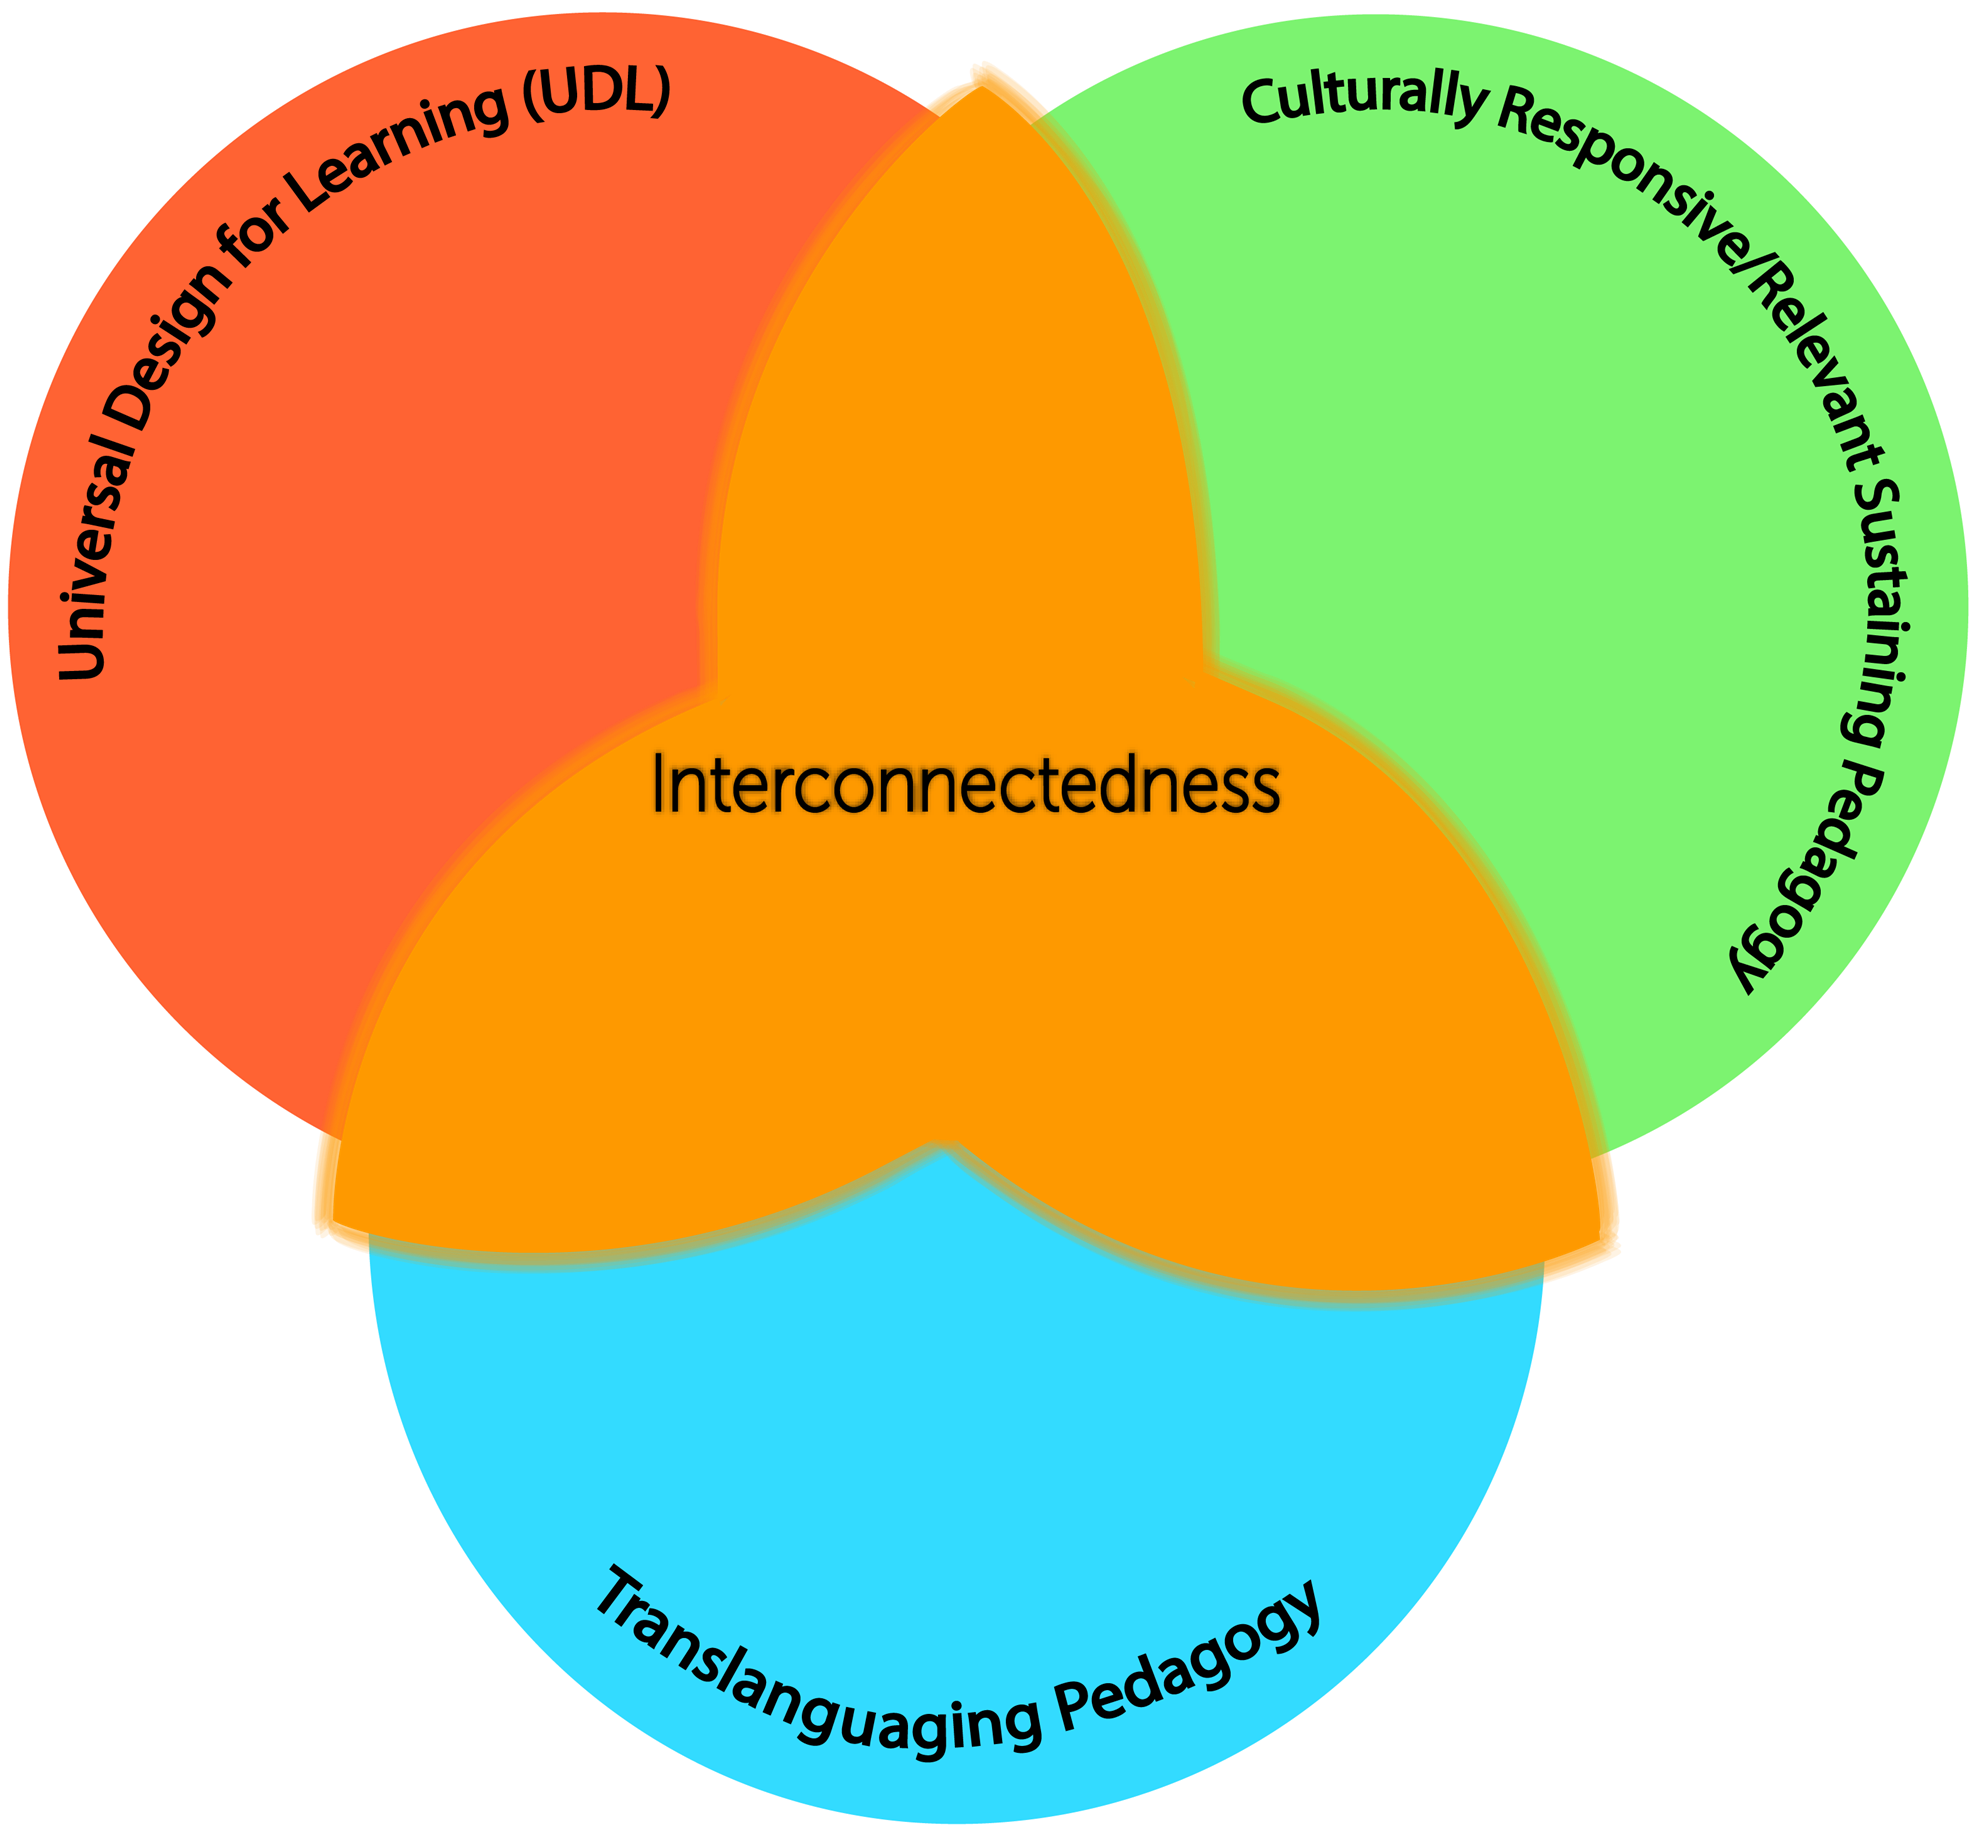 Inclusive teaching involves three interrelated pedagogies: CRP, translanguaging, and UDL.